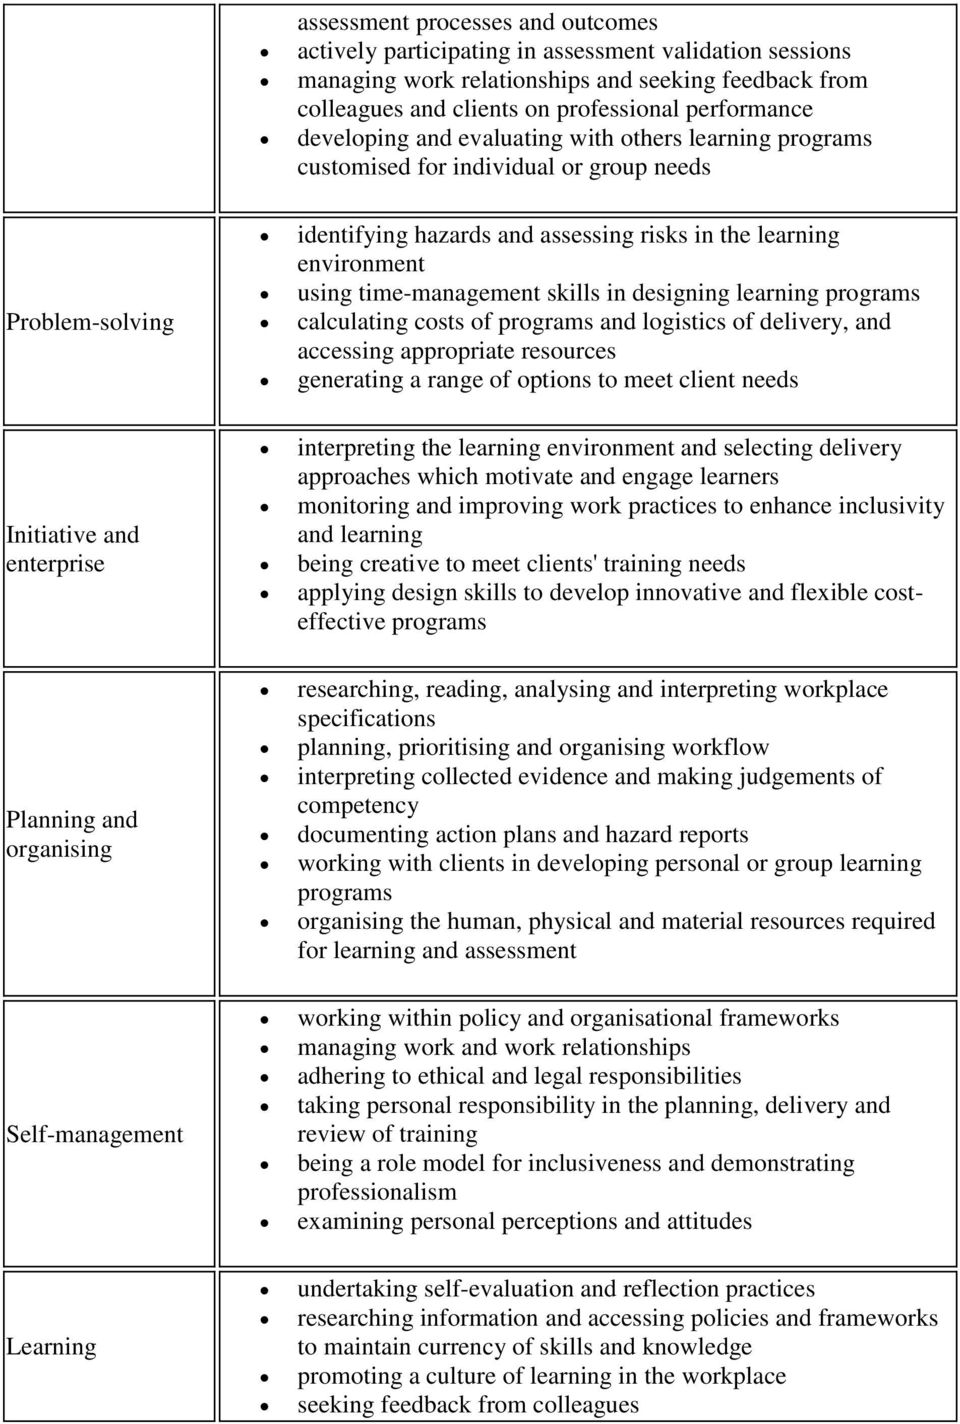 hazards and assessing risks in the learning environment using time-management skills in designing learning programs calculating costs of programs and logistics of delivery, and accessing appropriate